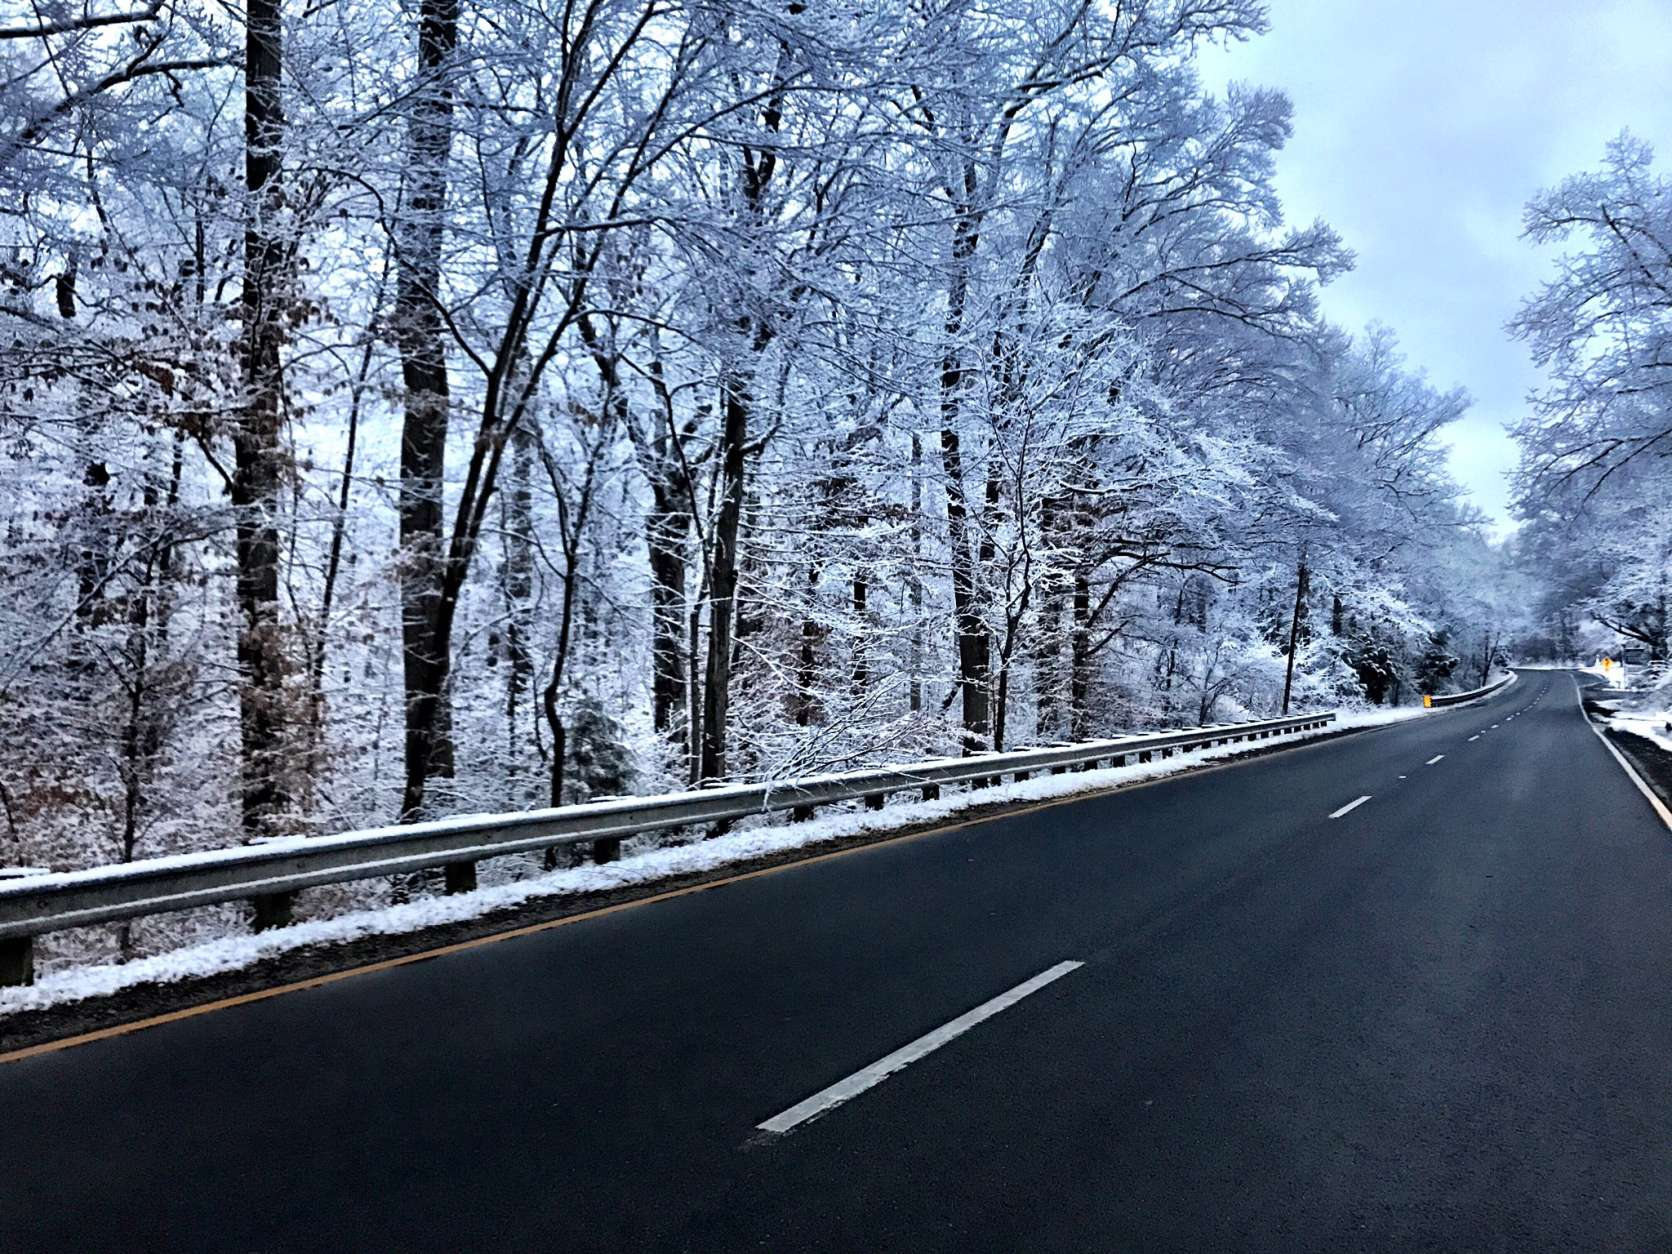 Even though Stafford County got 2 to 3 inches of snow, in most places road surfaces are just wet. (WTOP/Neal Augenstein)